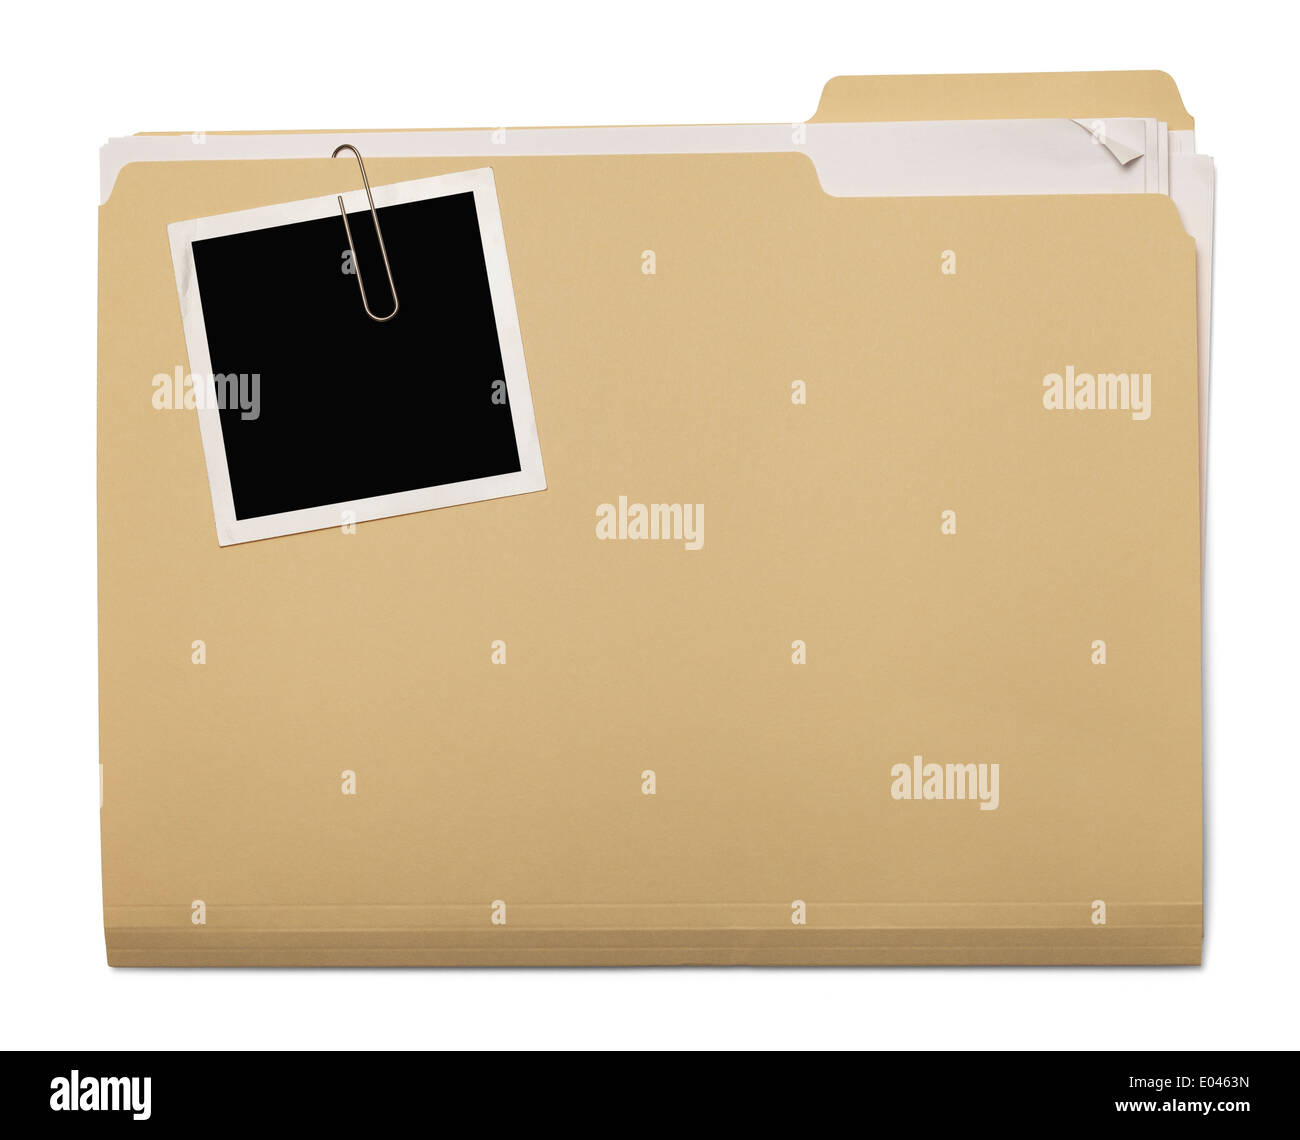 Folder with Papers Stuffed Inside with Photo on Top Isolated on White Background. - Stock Image